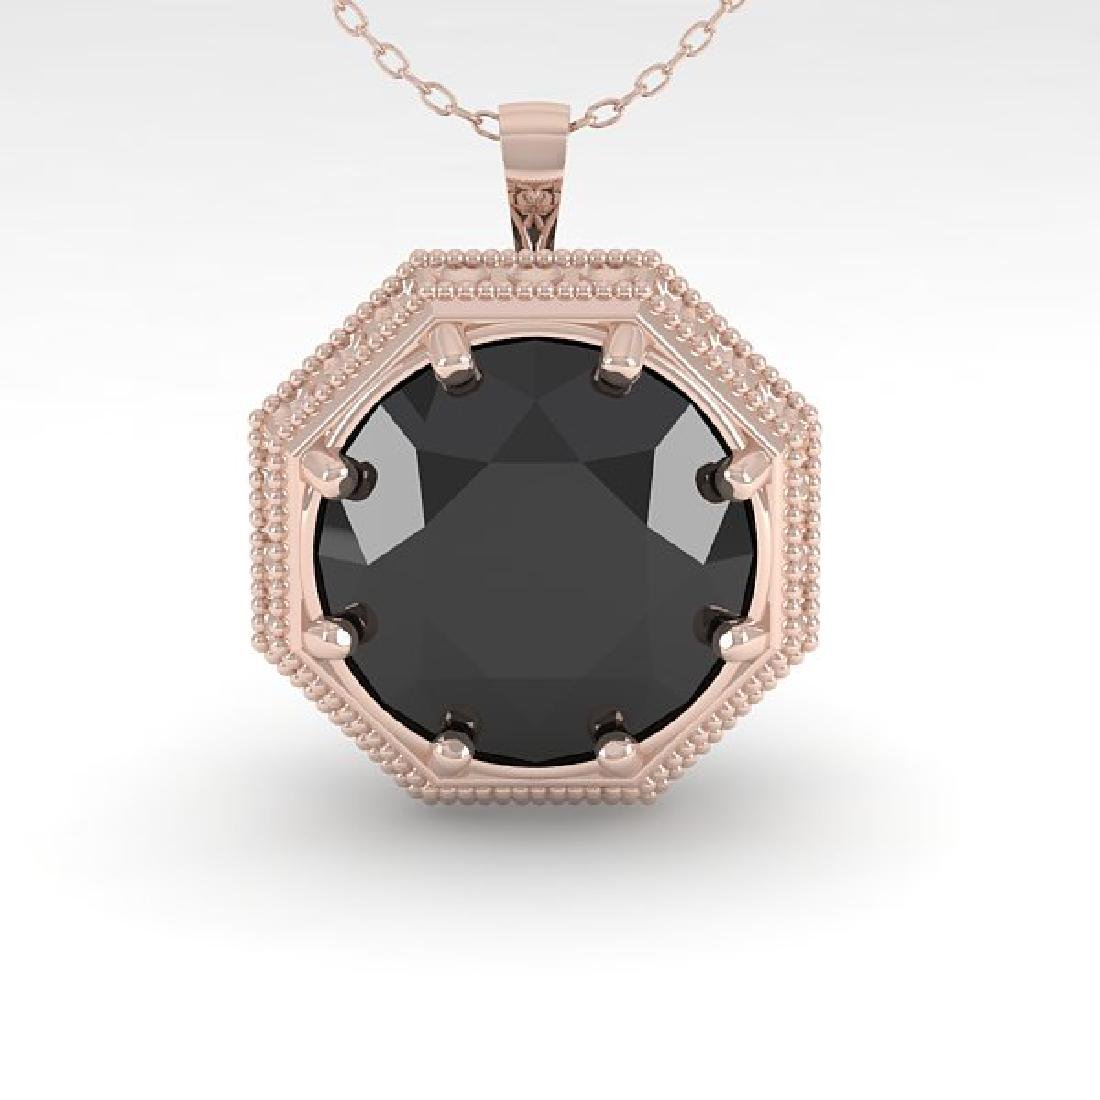 1.50 CTW Black Certified Diamond Necklace 14K Rose Gold - 2